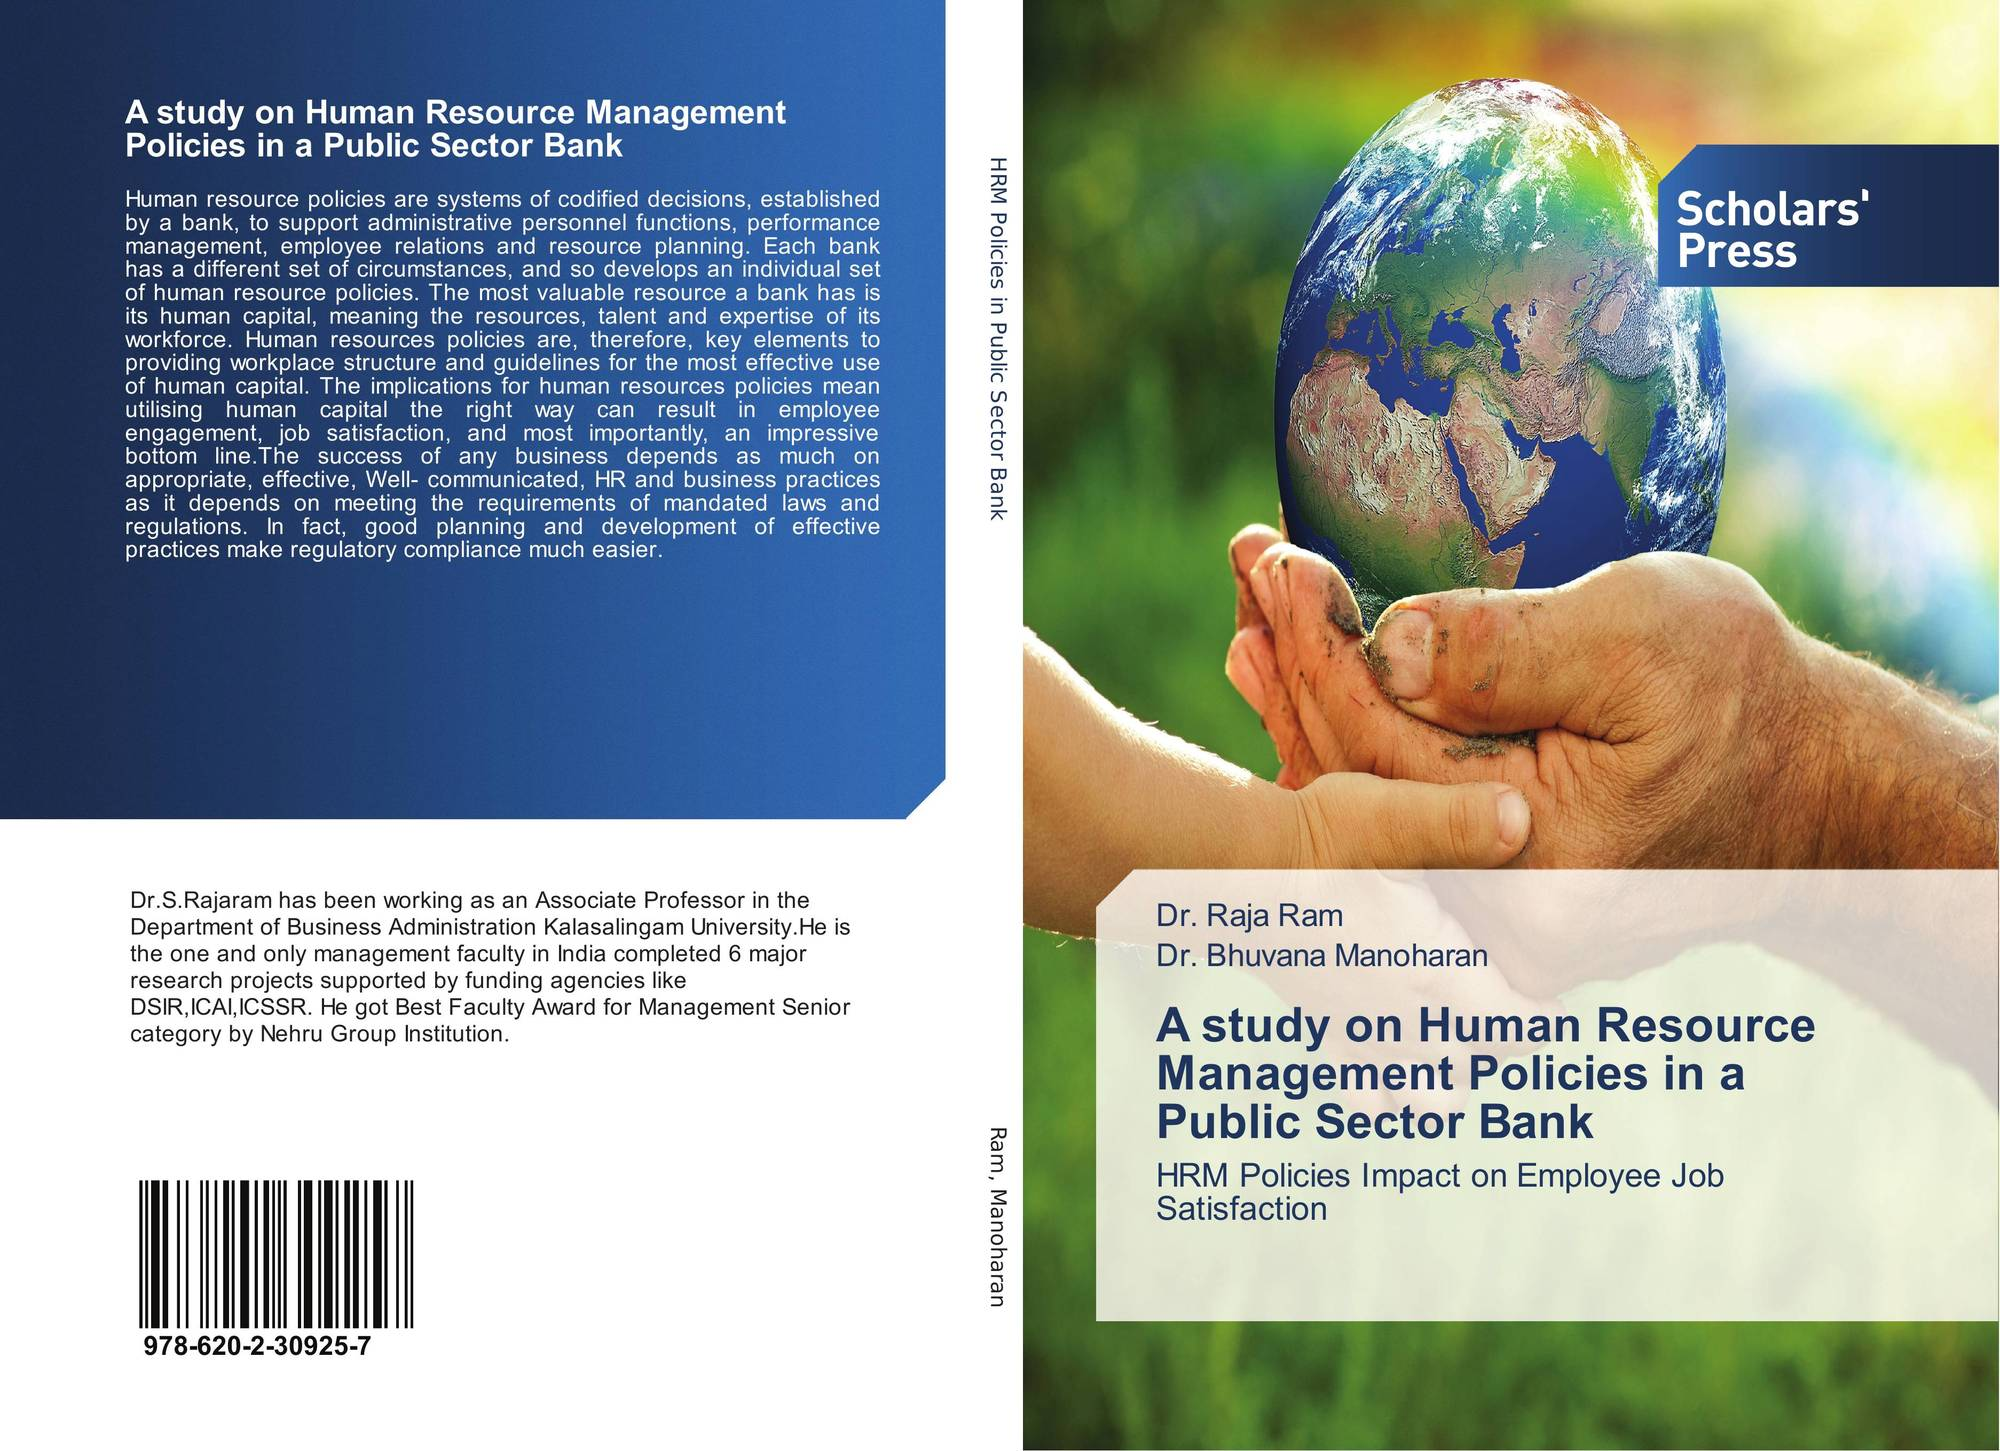 human resource management policies and practices that Human resource management refers to the management of human capital-employees who contribute to the achievement of business goals several human resource functions and practices help managers attract and retain employees, operate within the boundaries of state and federal laws.